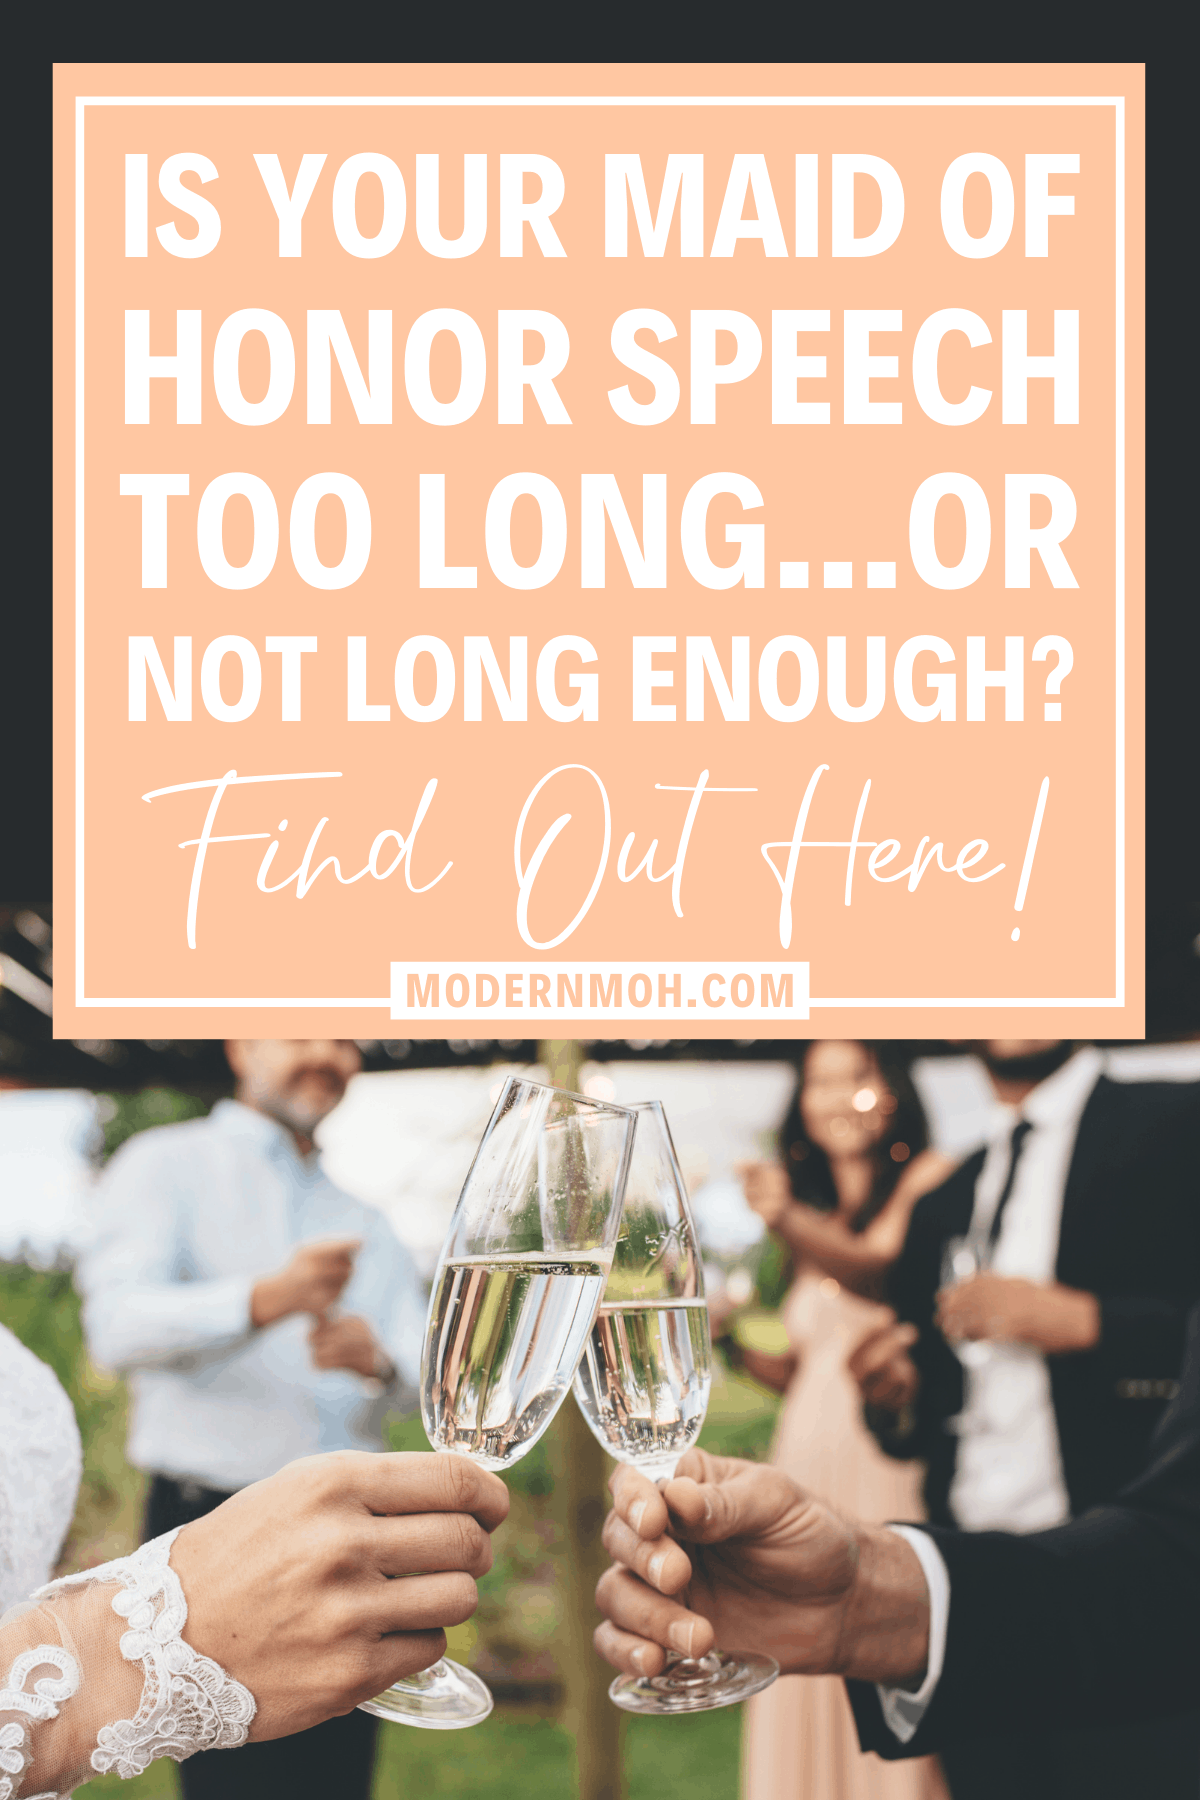 How Long Should a Maid of Honor Speech Be?